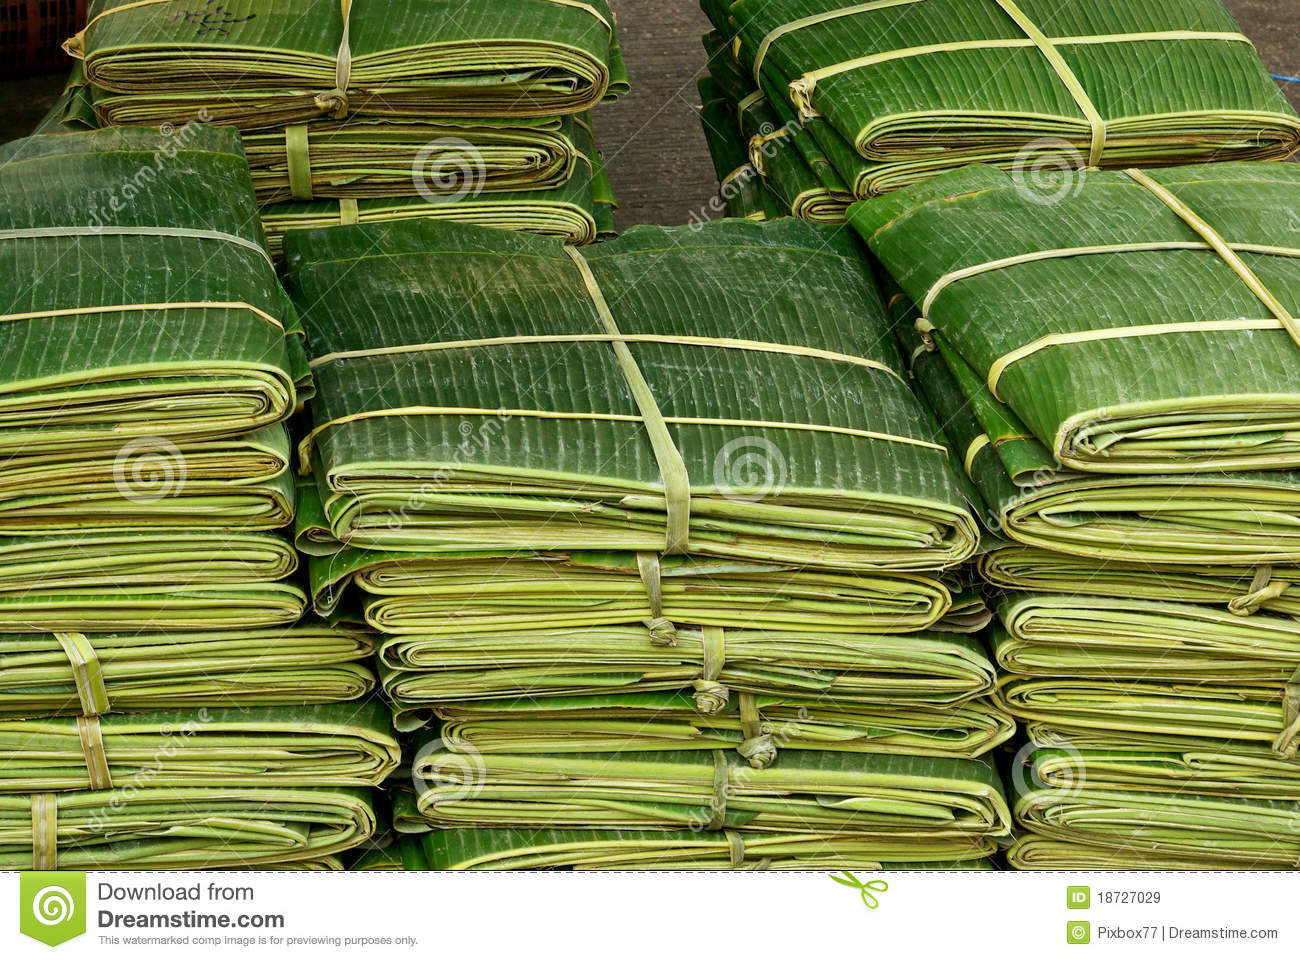 banana leaf for decorate food in thai style stock image. Black Bedroom Furniture Sets. Home Design Ideas